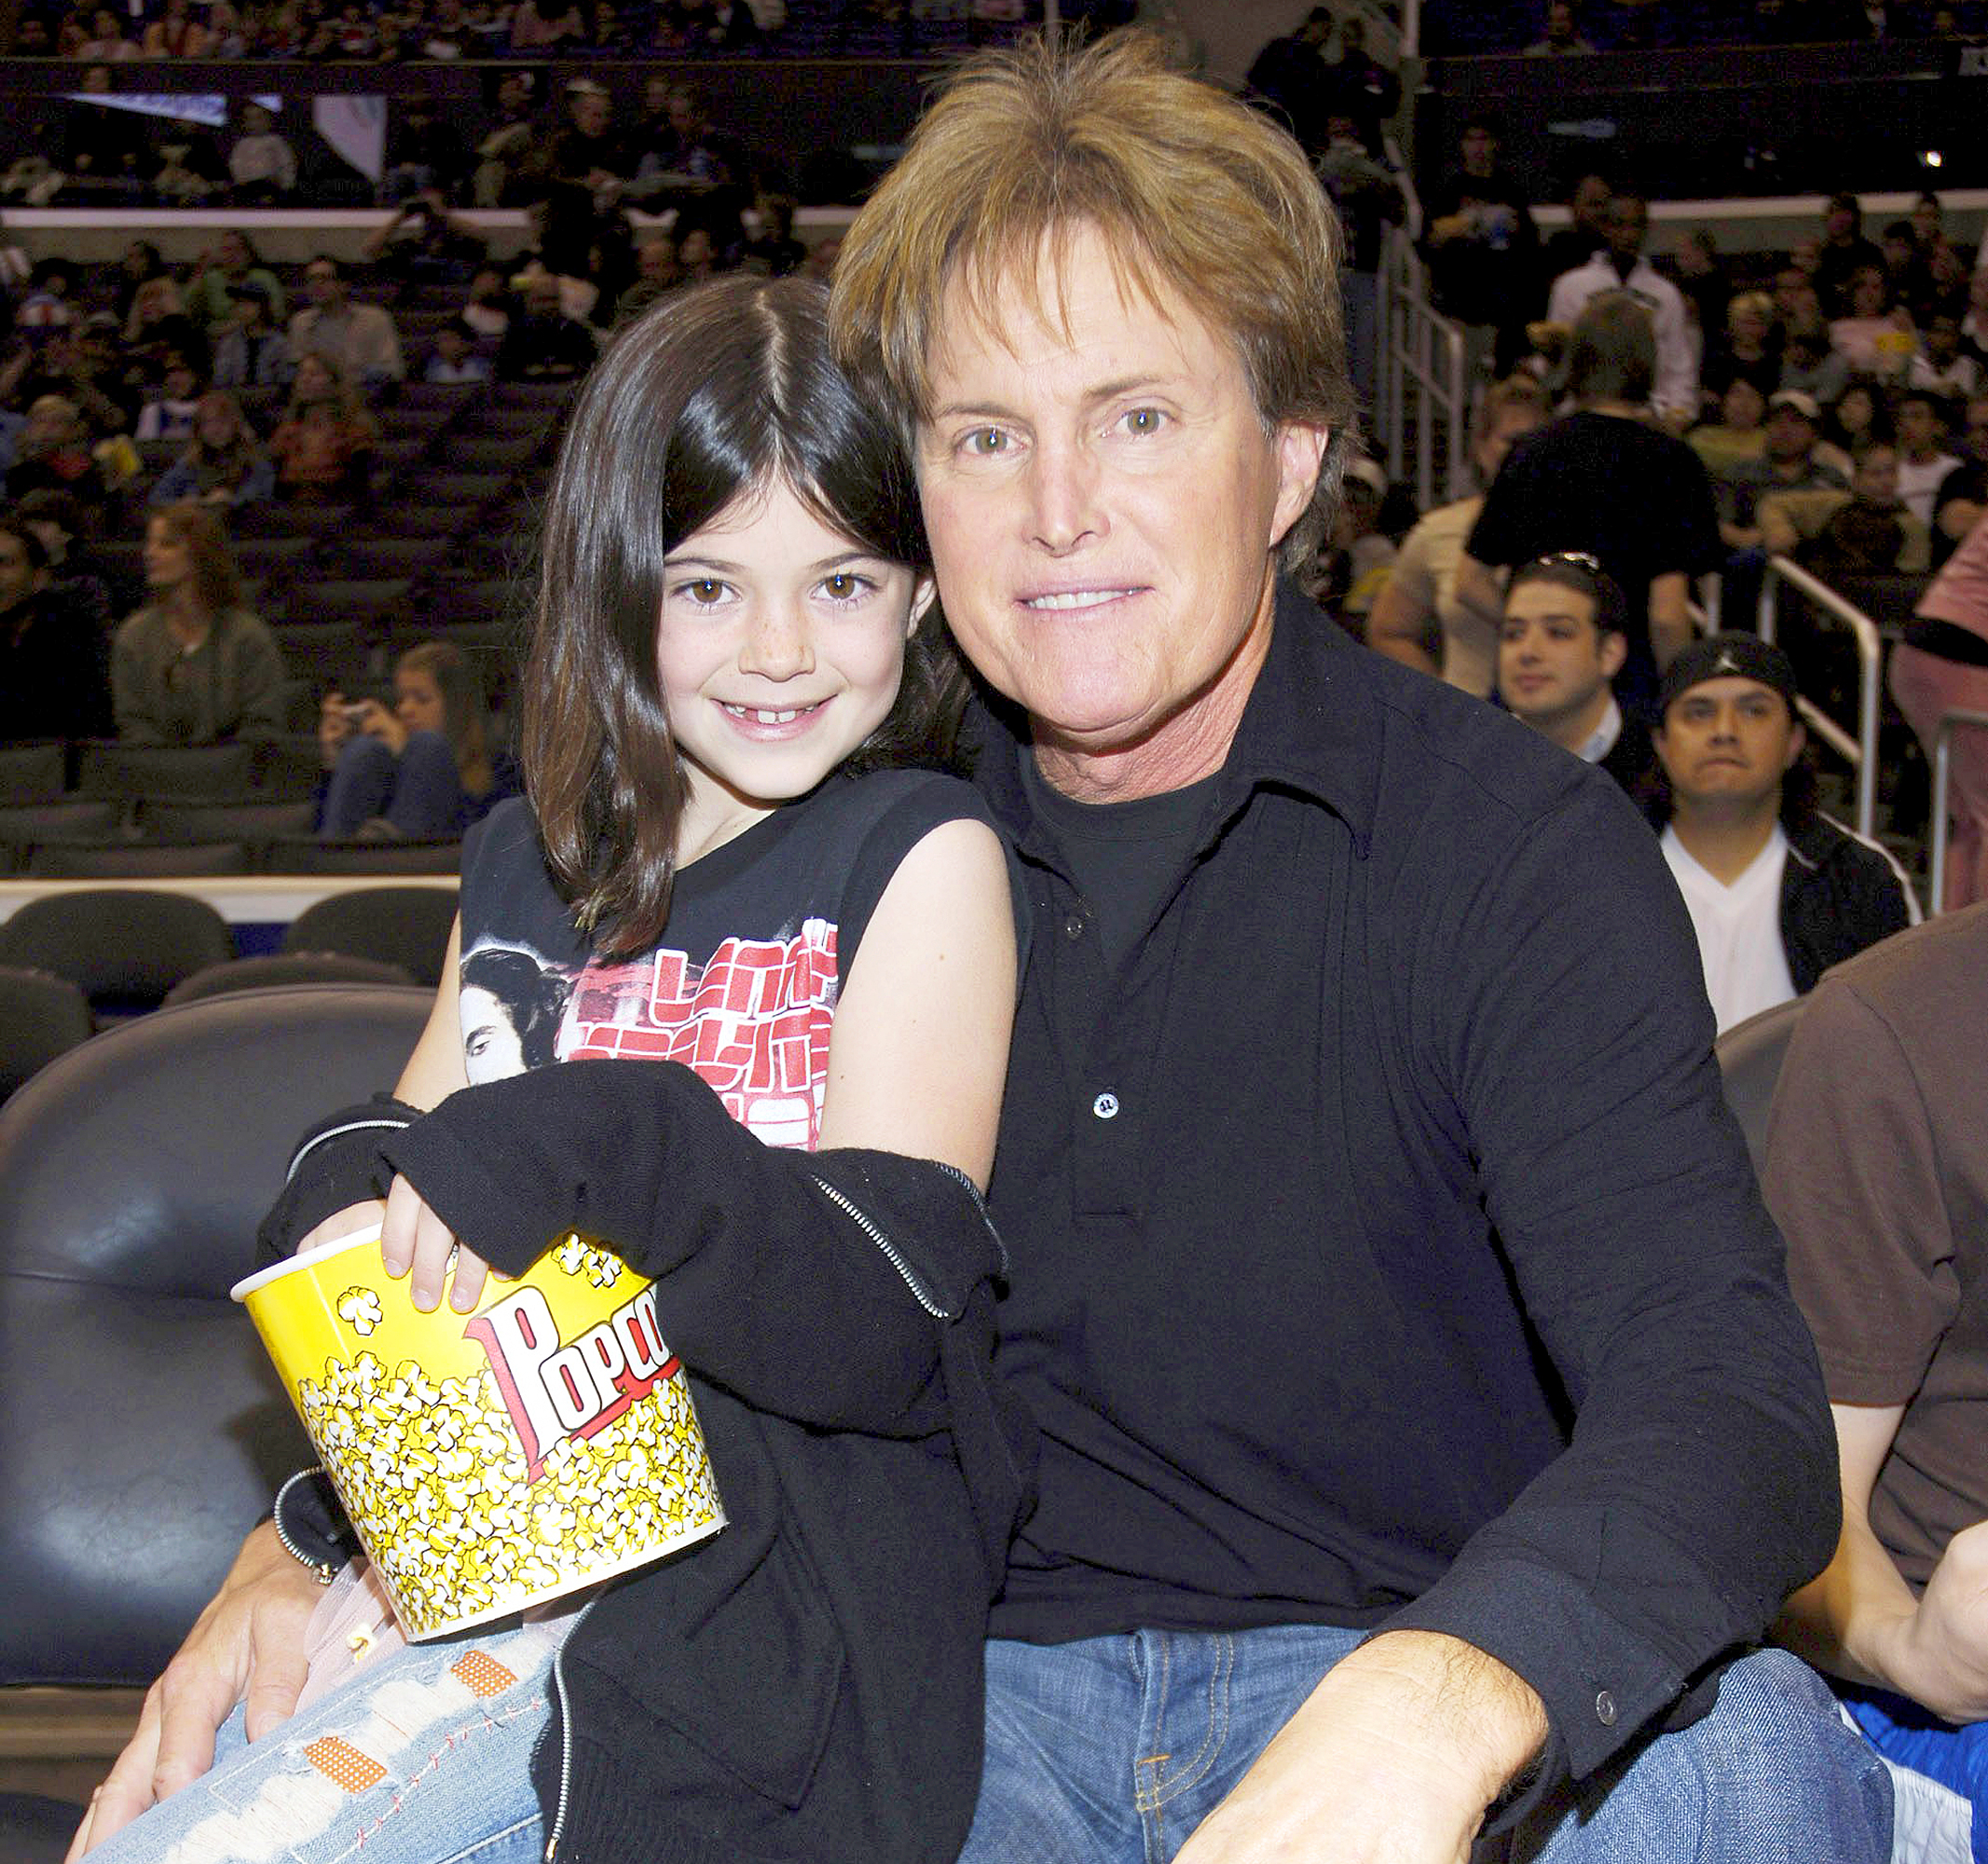 Kylie Jenner and Bruce Jenner